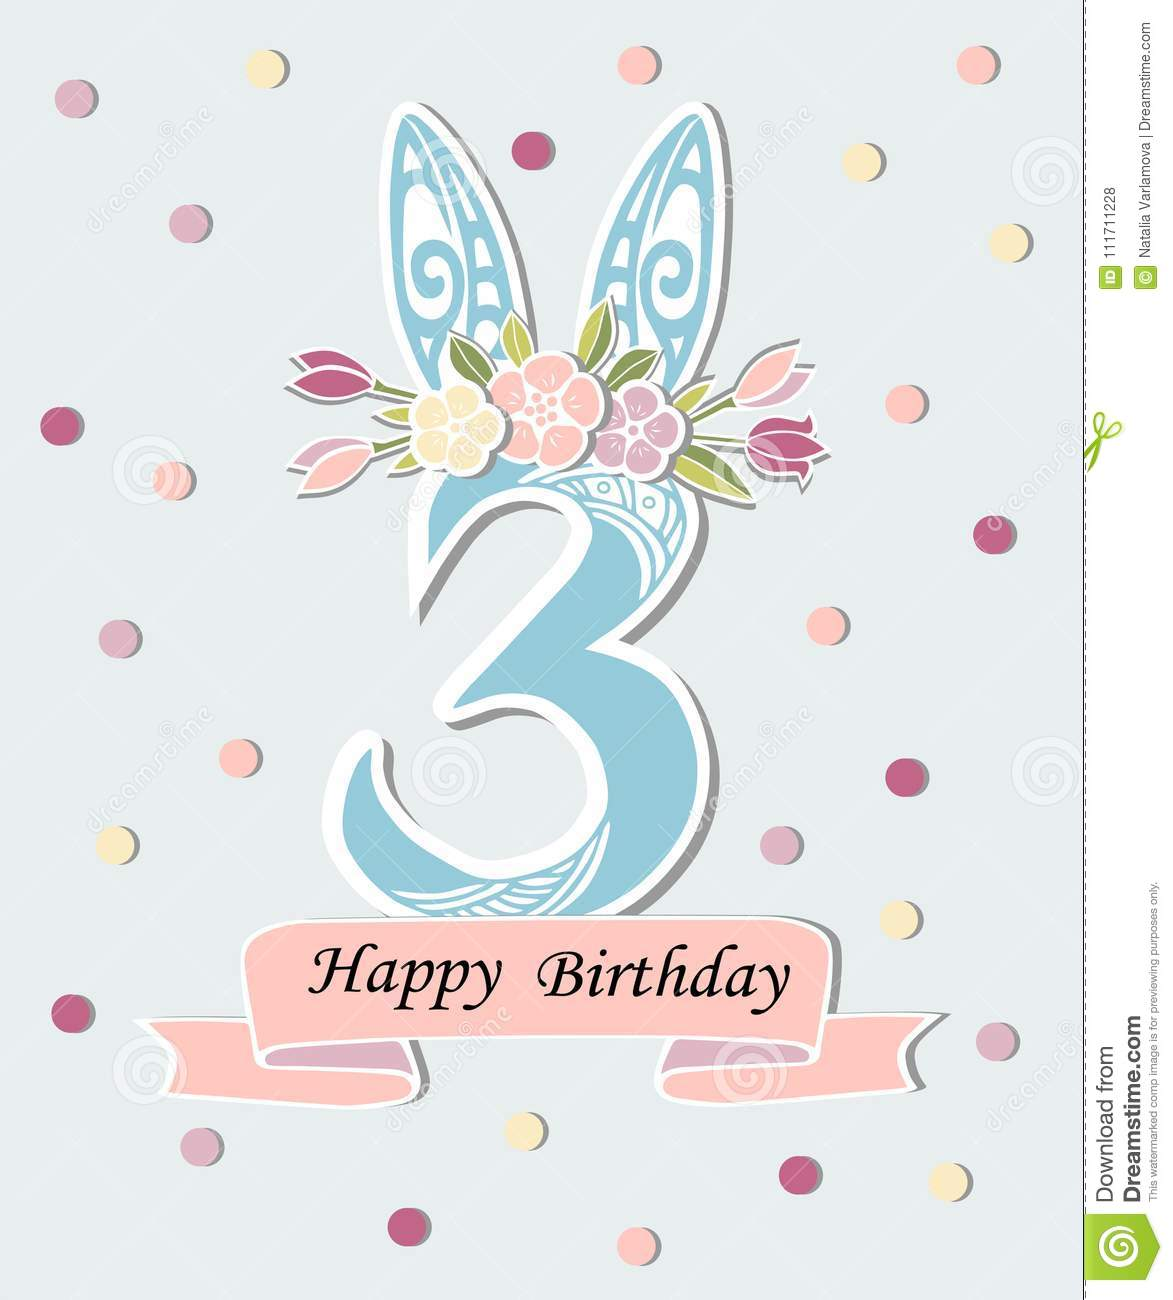 Vector illustration with number three bunny ears and floral wreath download comp maxwellsz